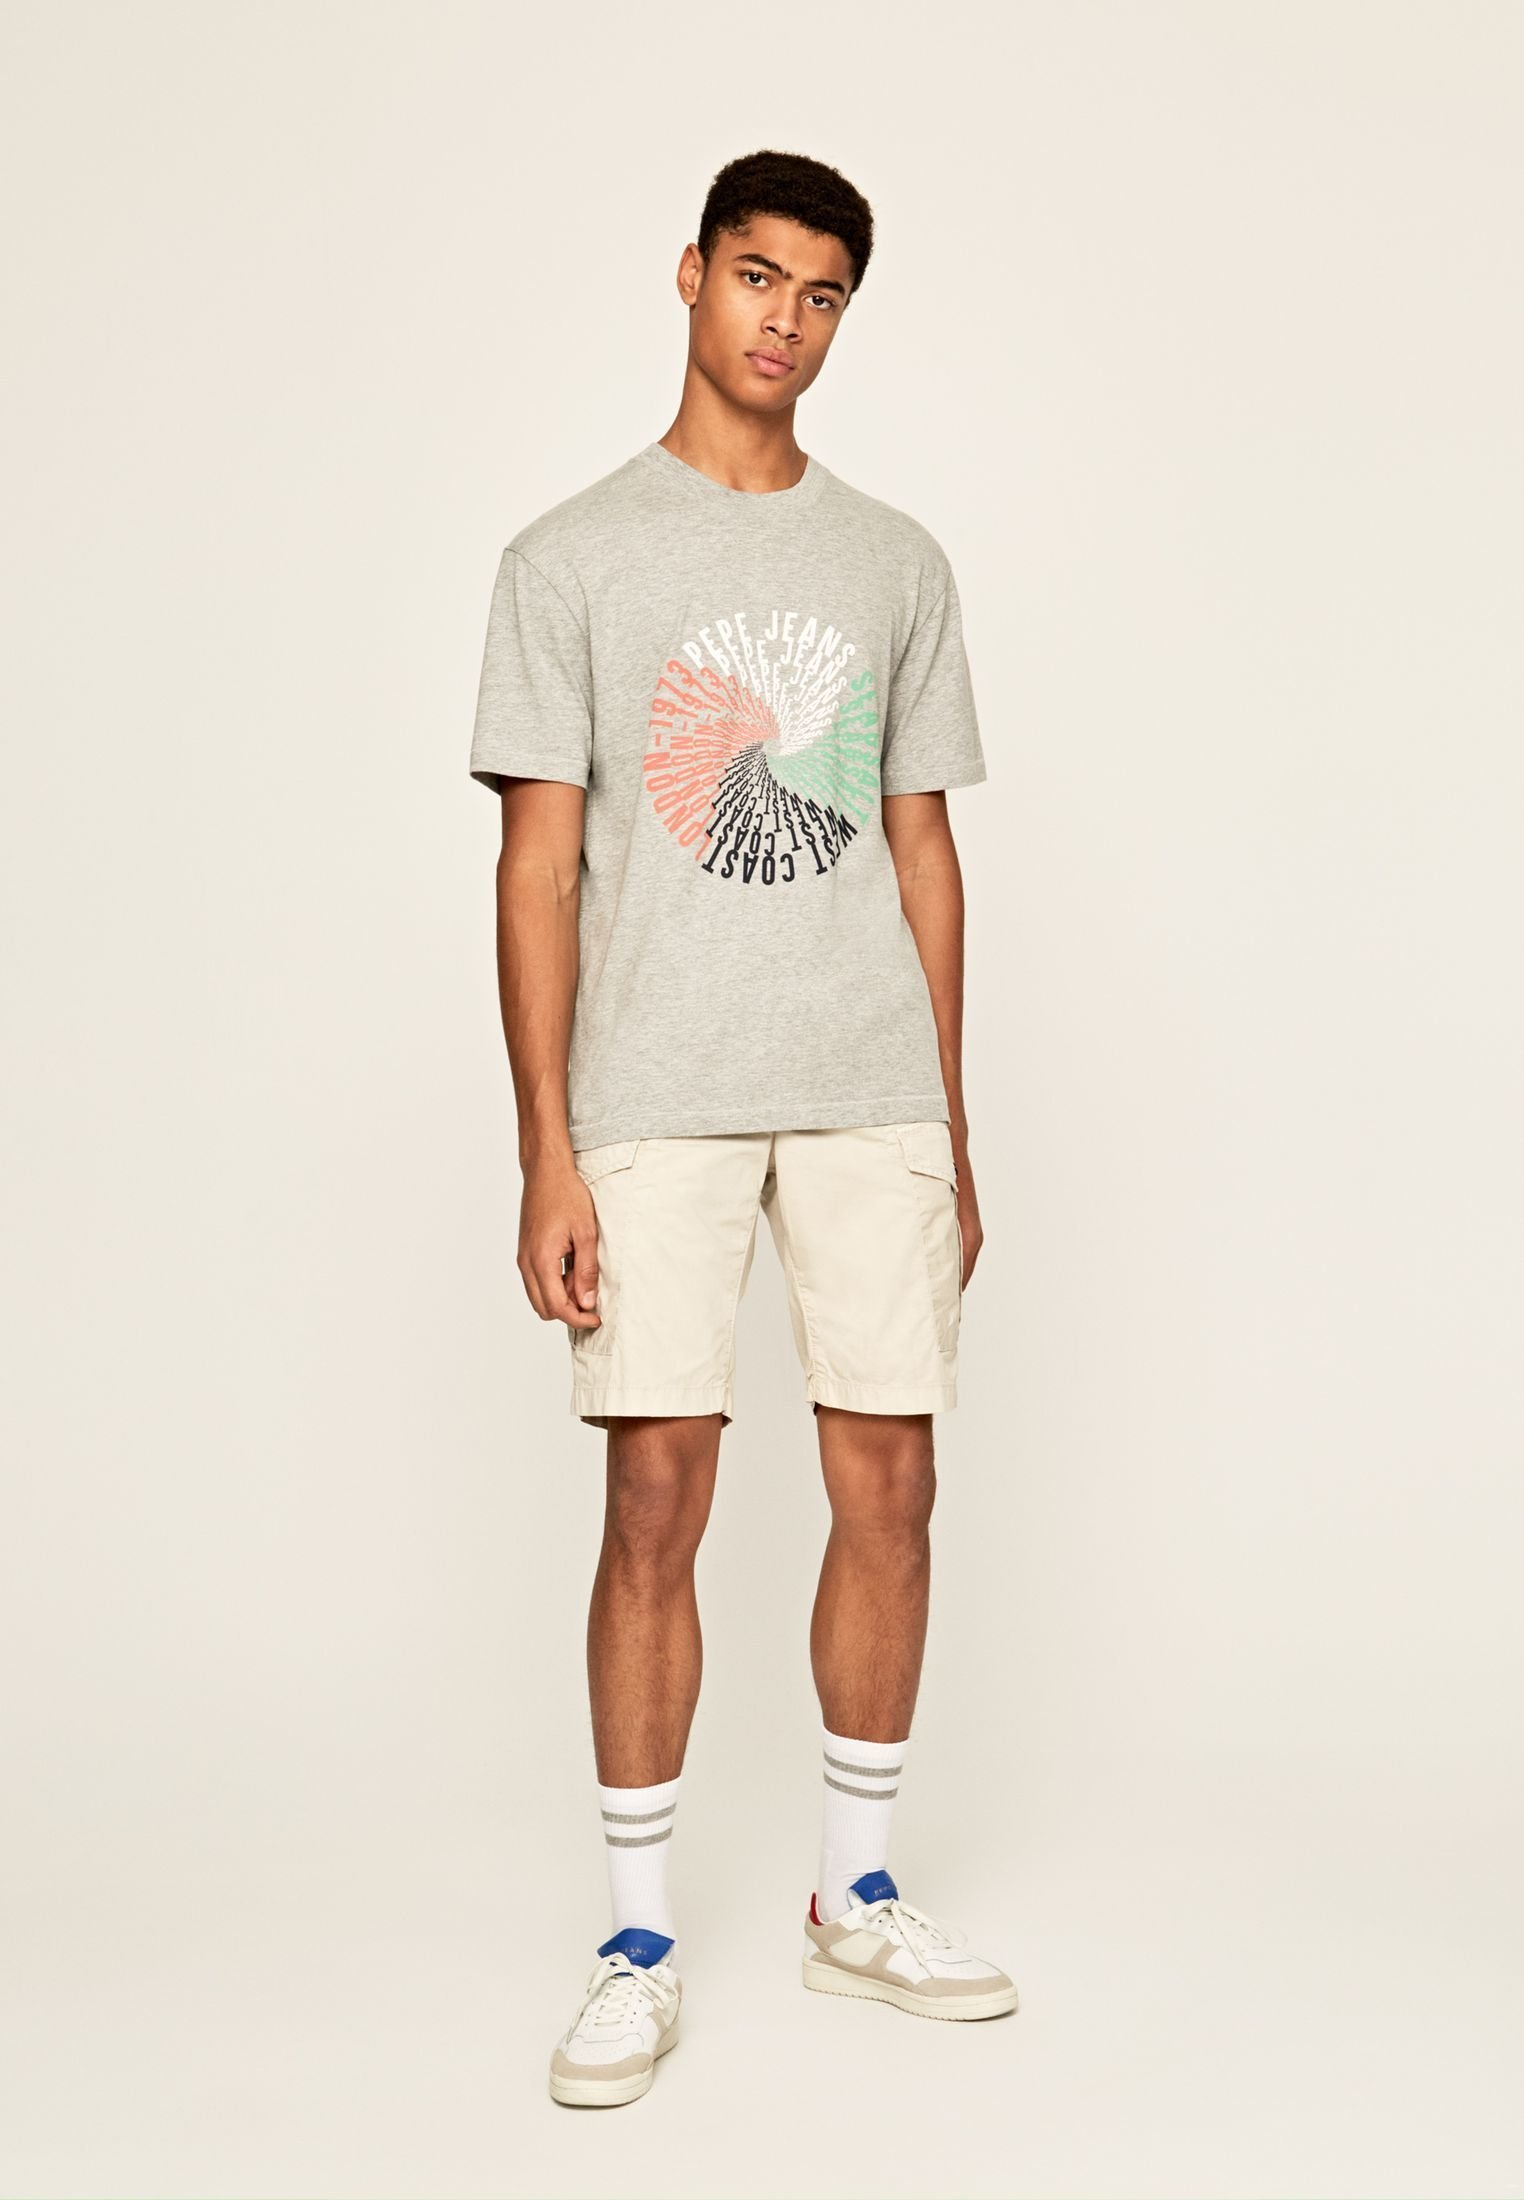 Pepe Jeans Marvin - T-shirt Con Stampa Gris Marl 5zVWwBU